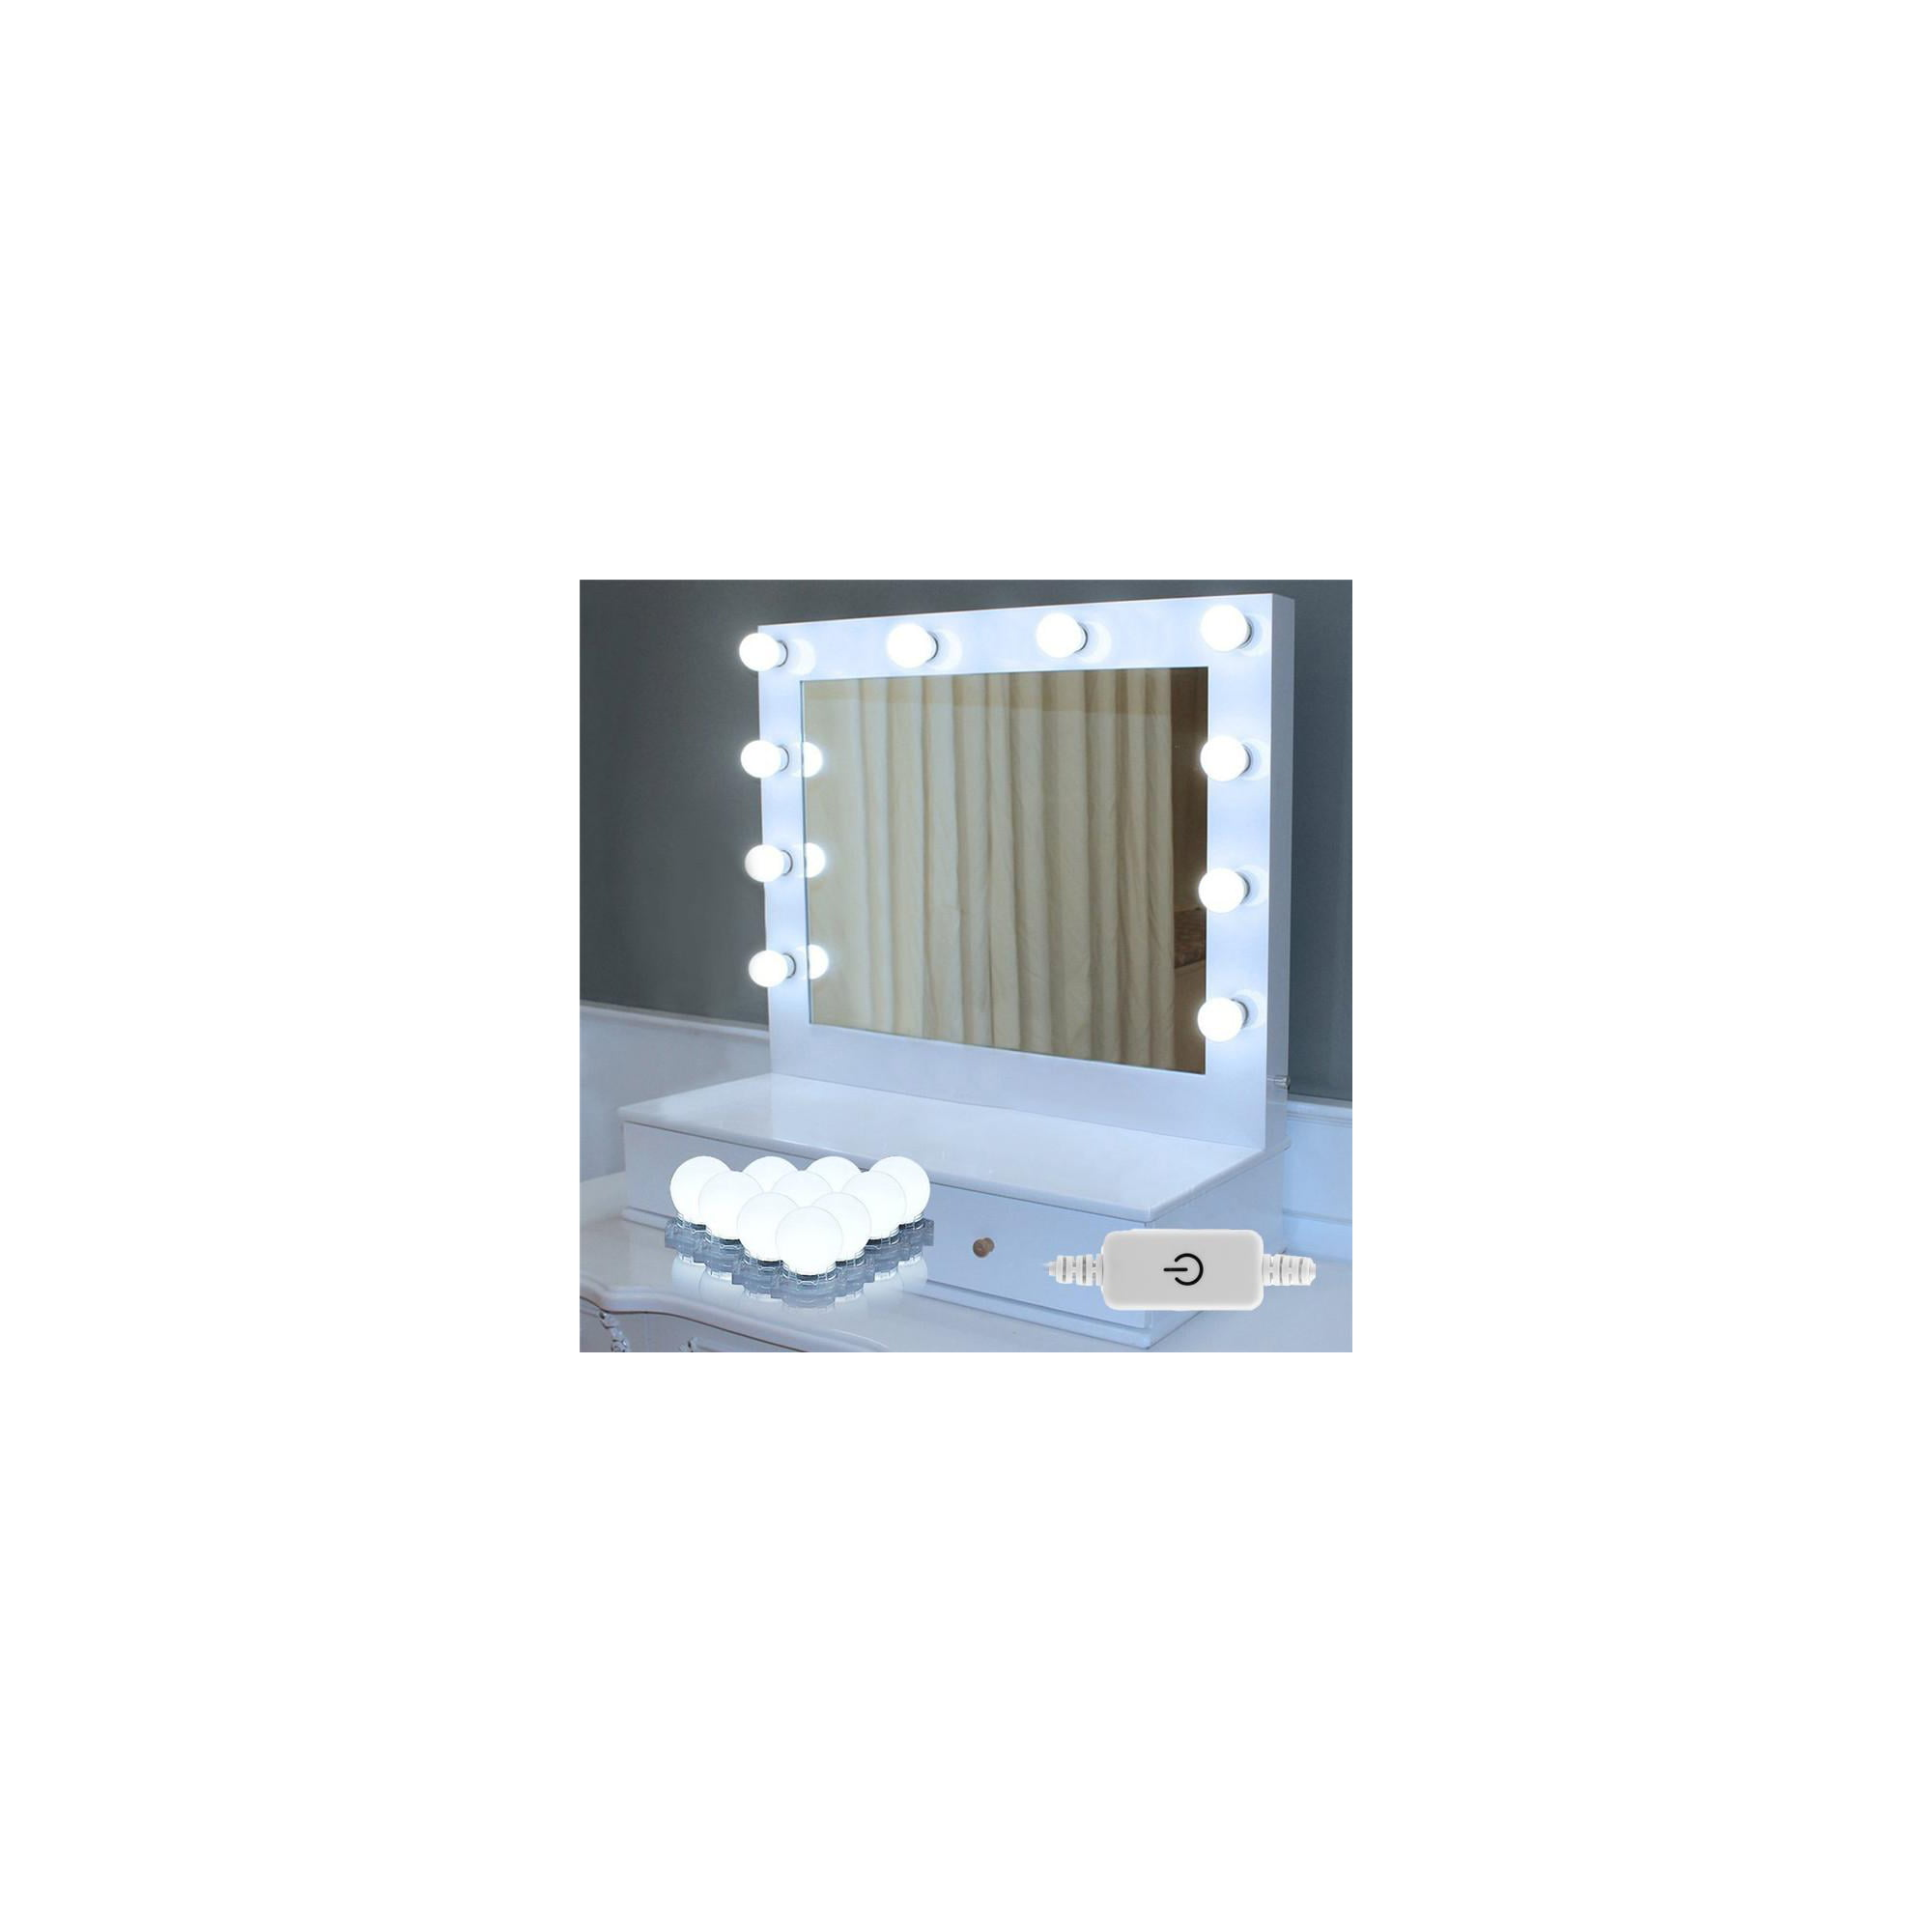 Mirror Frame Or Wall, Best Makeup Mirrors Canada